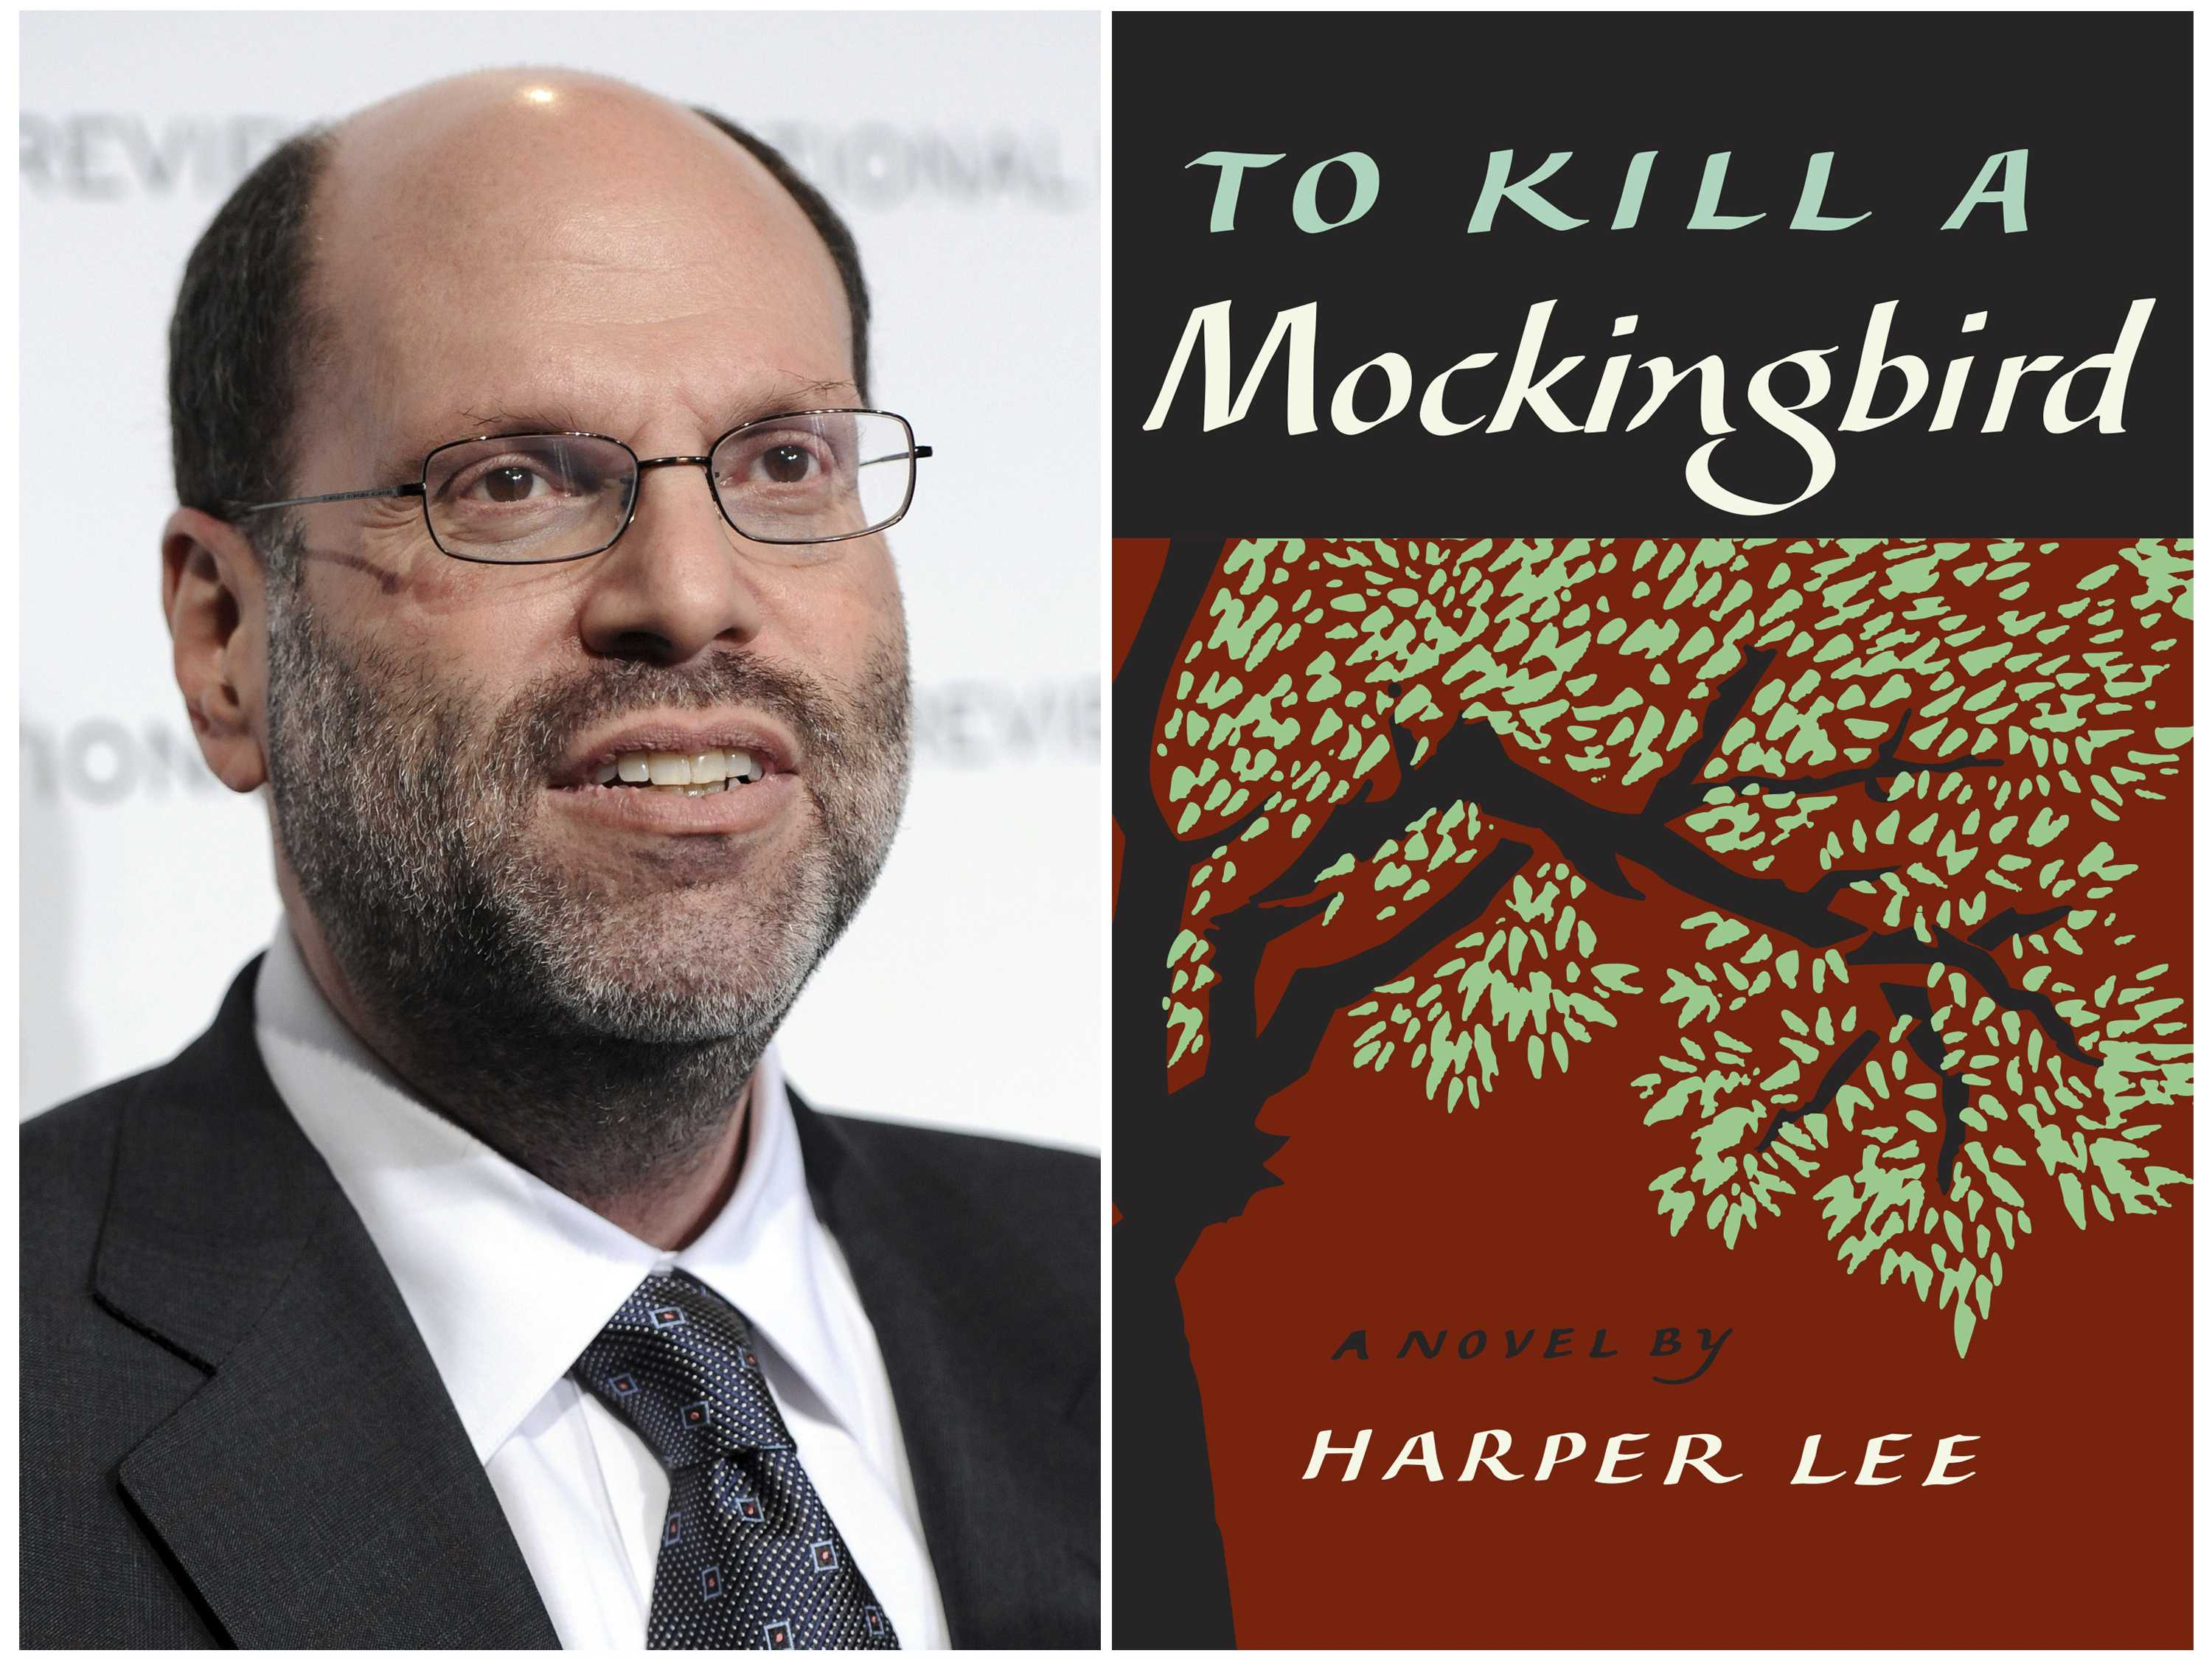 'To Kill a Mockingbird' Compromise Offered to Small Theaters